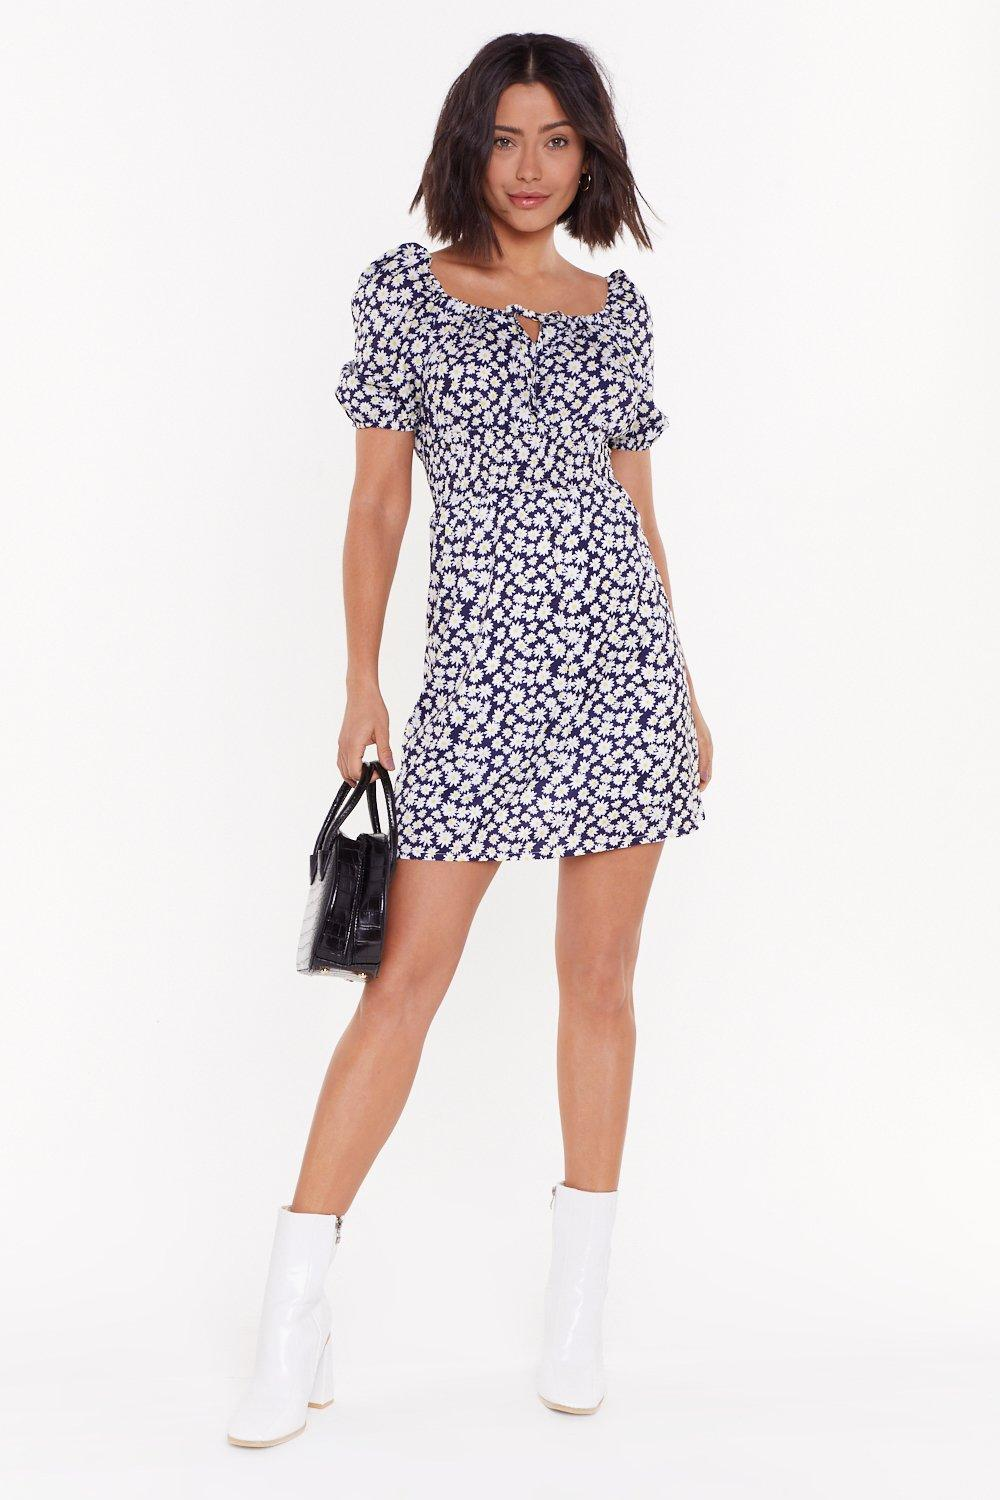 Leave Her Wild Daisy Mini Dress by Nasty Gal